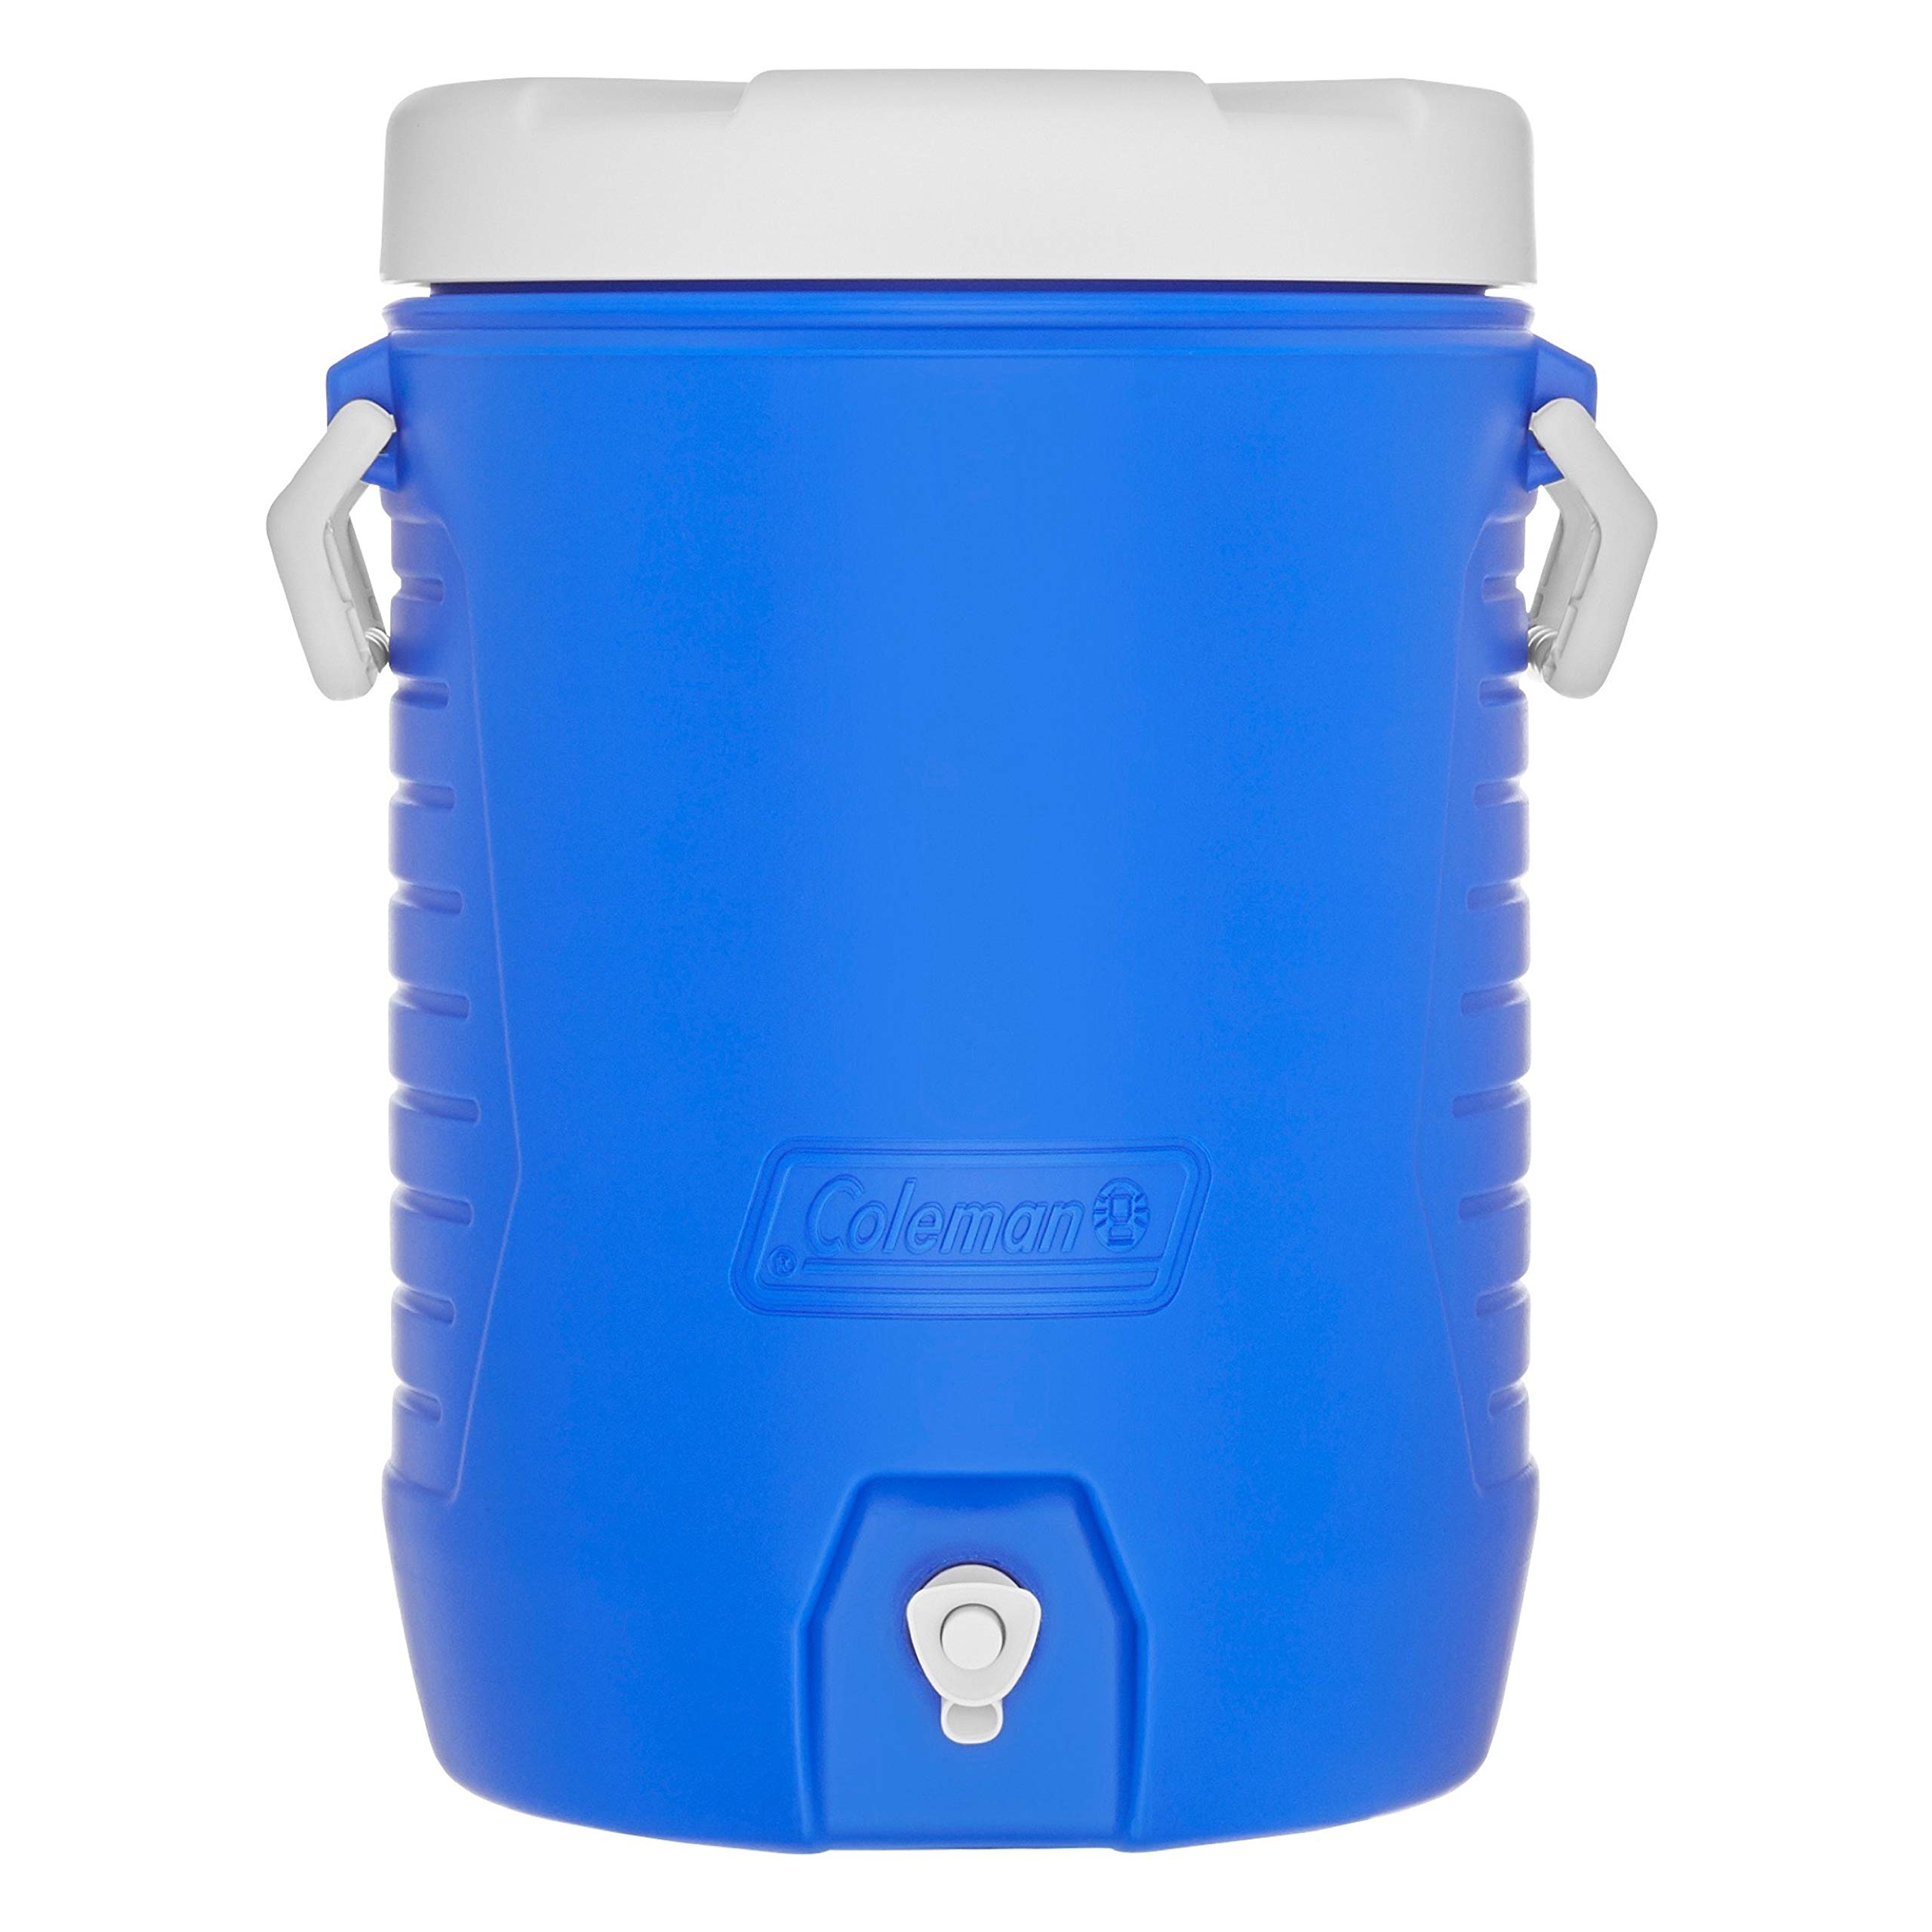 Coleman 5-Gallon Beverage Cooler, Blue